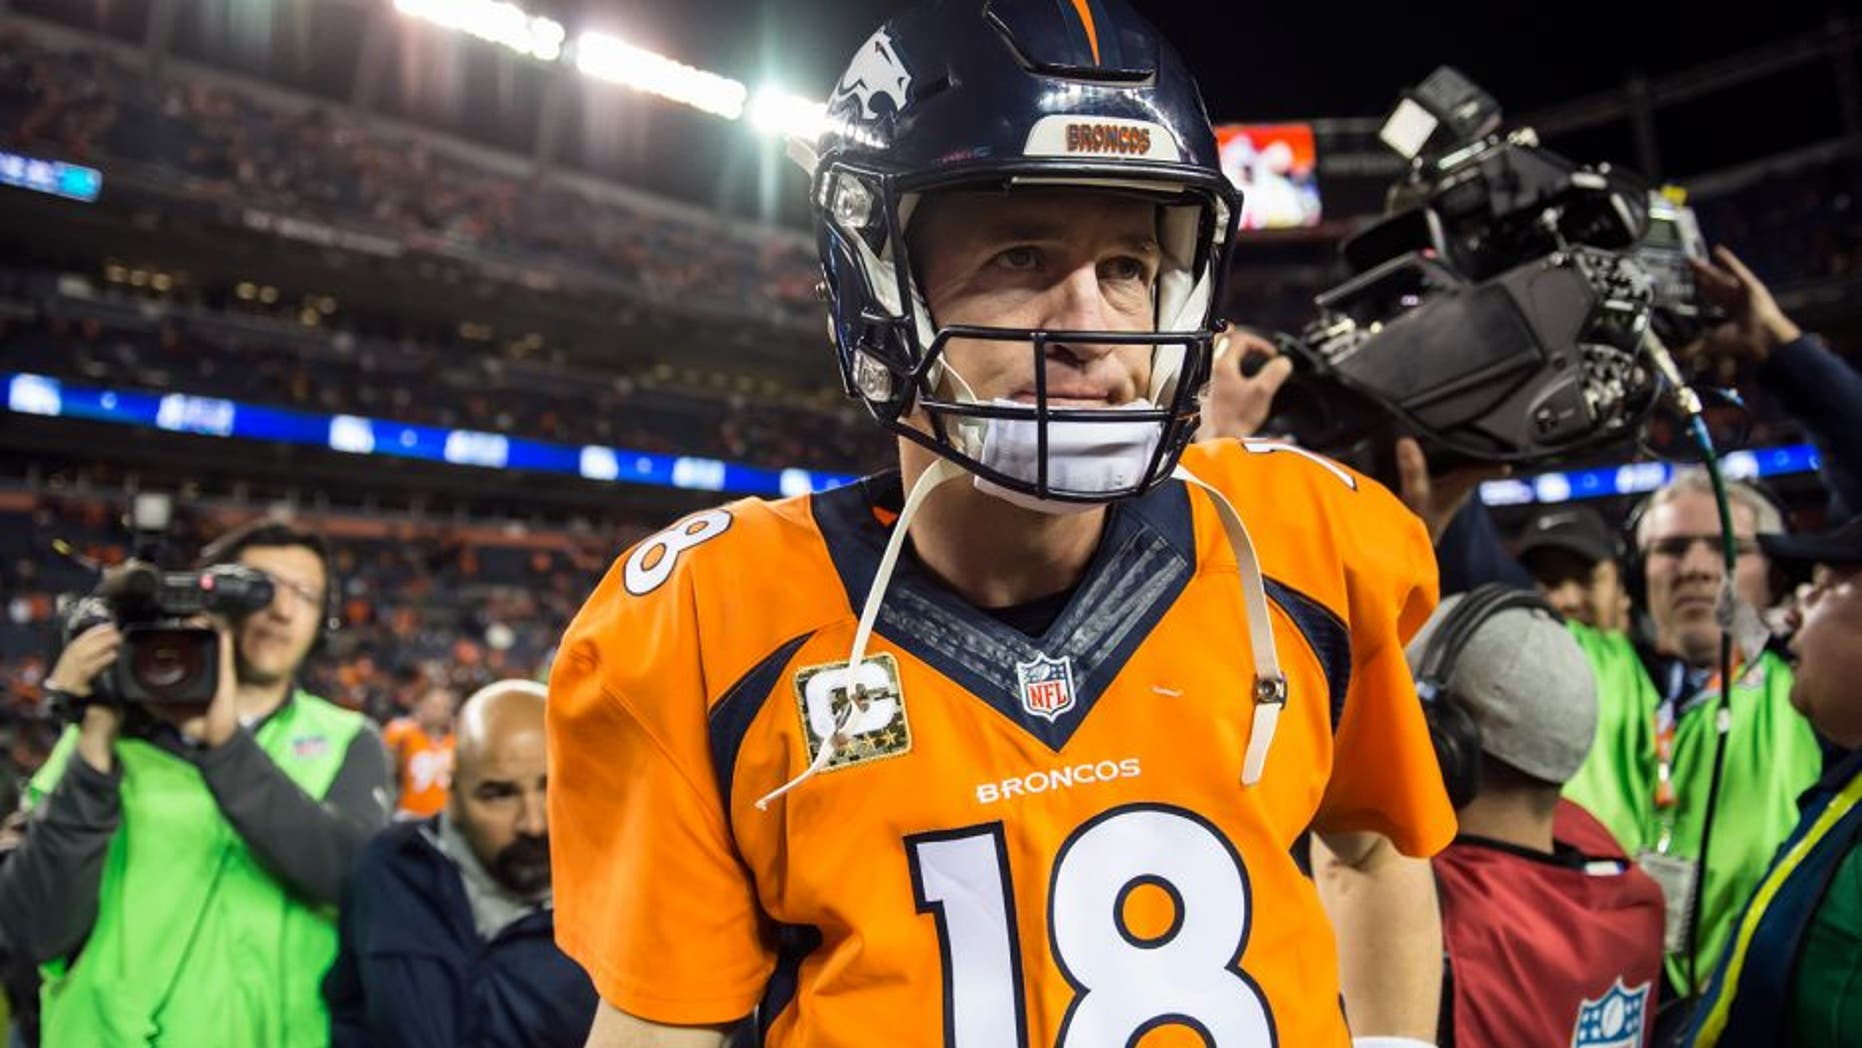 Denver Broncos quarterback Peyton Manning (18) walks off the field after throwing four interceptions and being replaced by Denver Broncos quarterback Brock Osweiler in the 29-13 loss to the Kansas City Chiefs on Sunday, Nov. 15, 2015, at Sports Authority Field at Mile High Stadium in Denver. (David Eulitt/Kansas City Star/TNS via Getty Images)